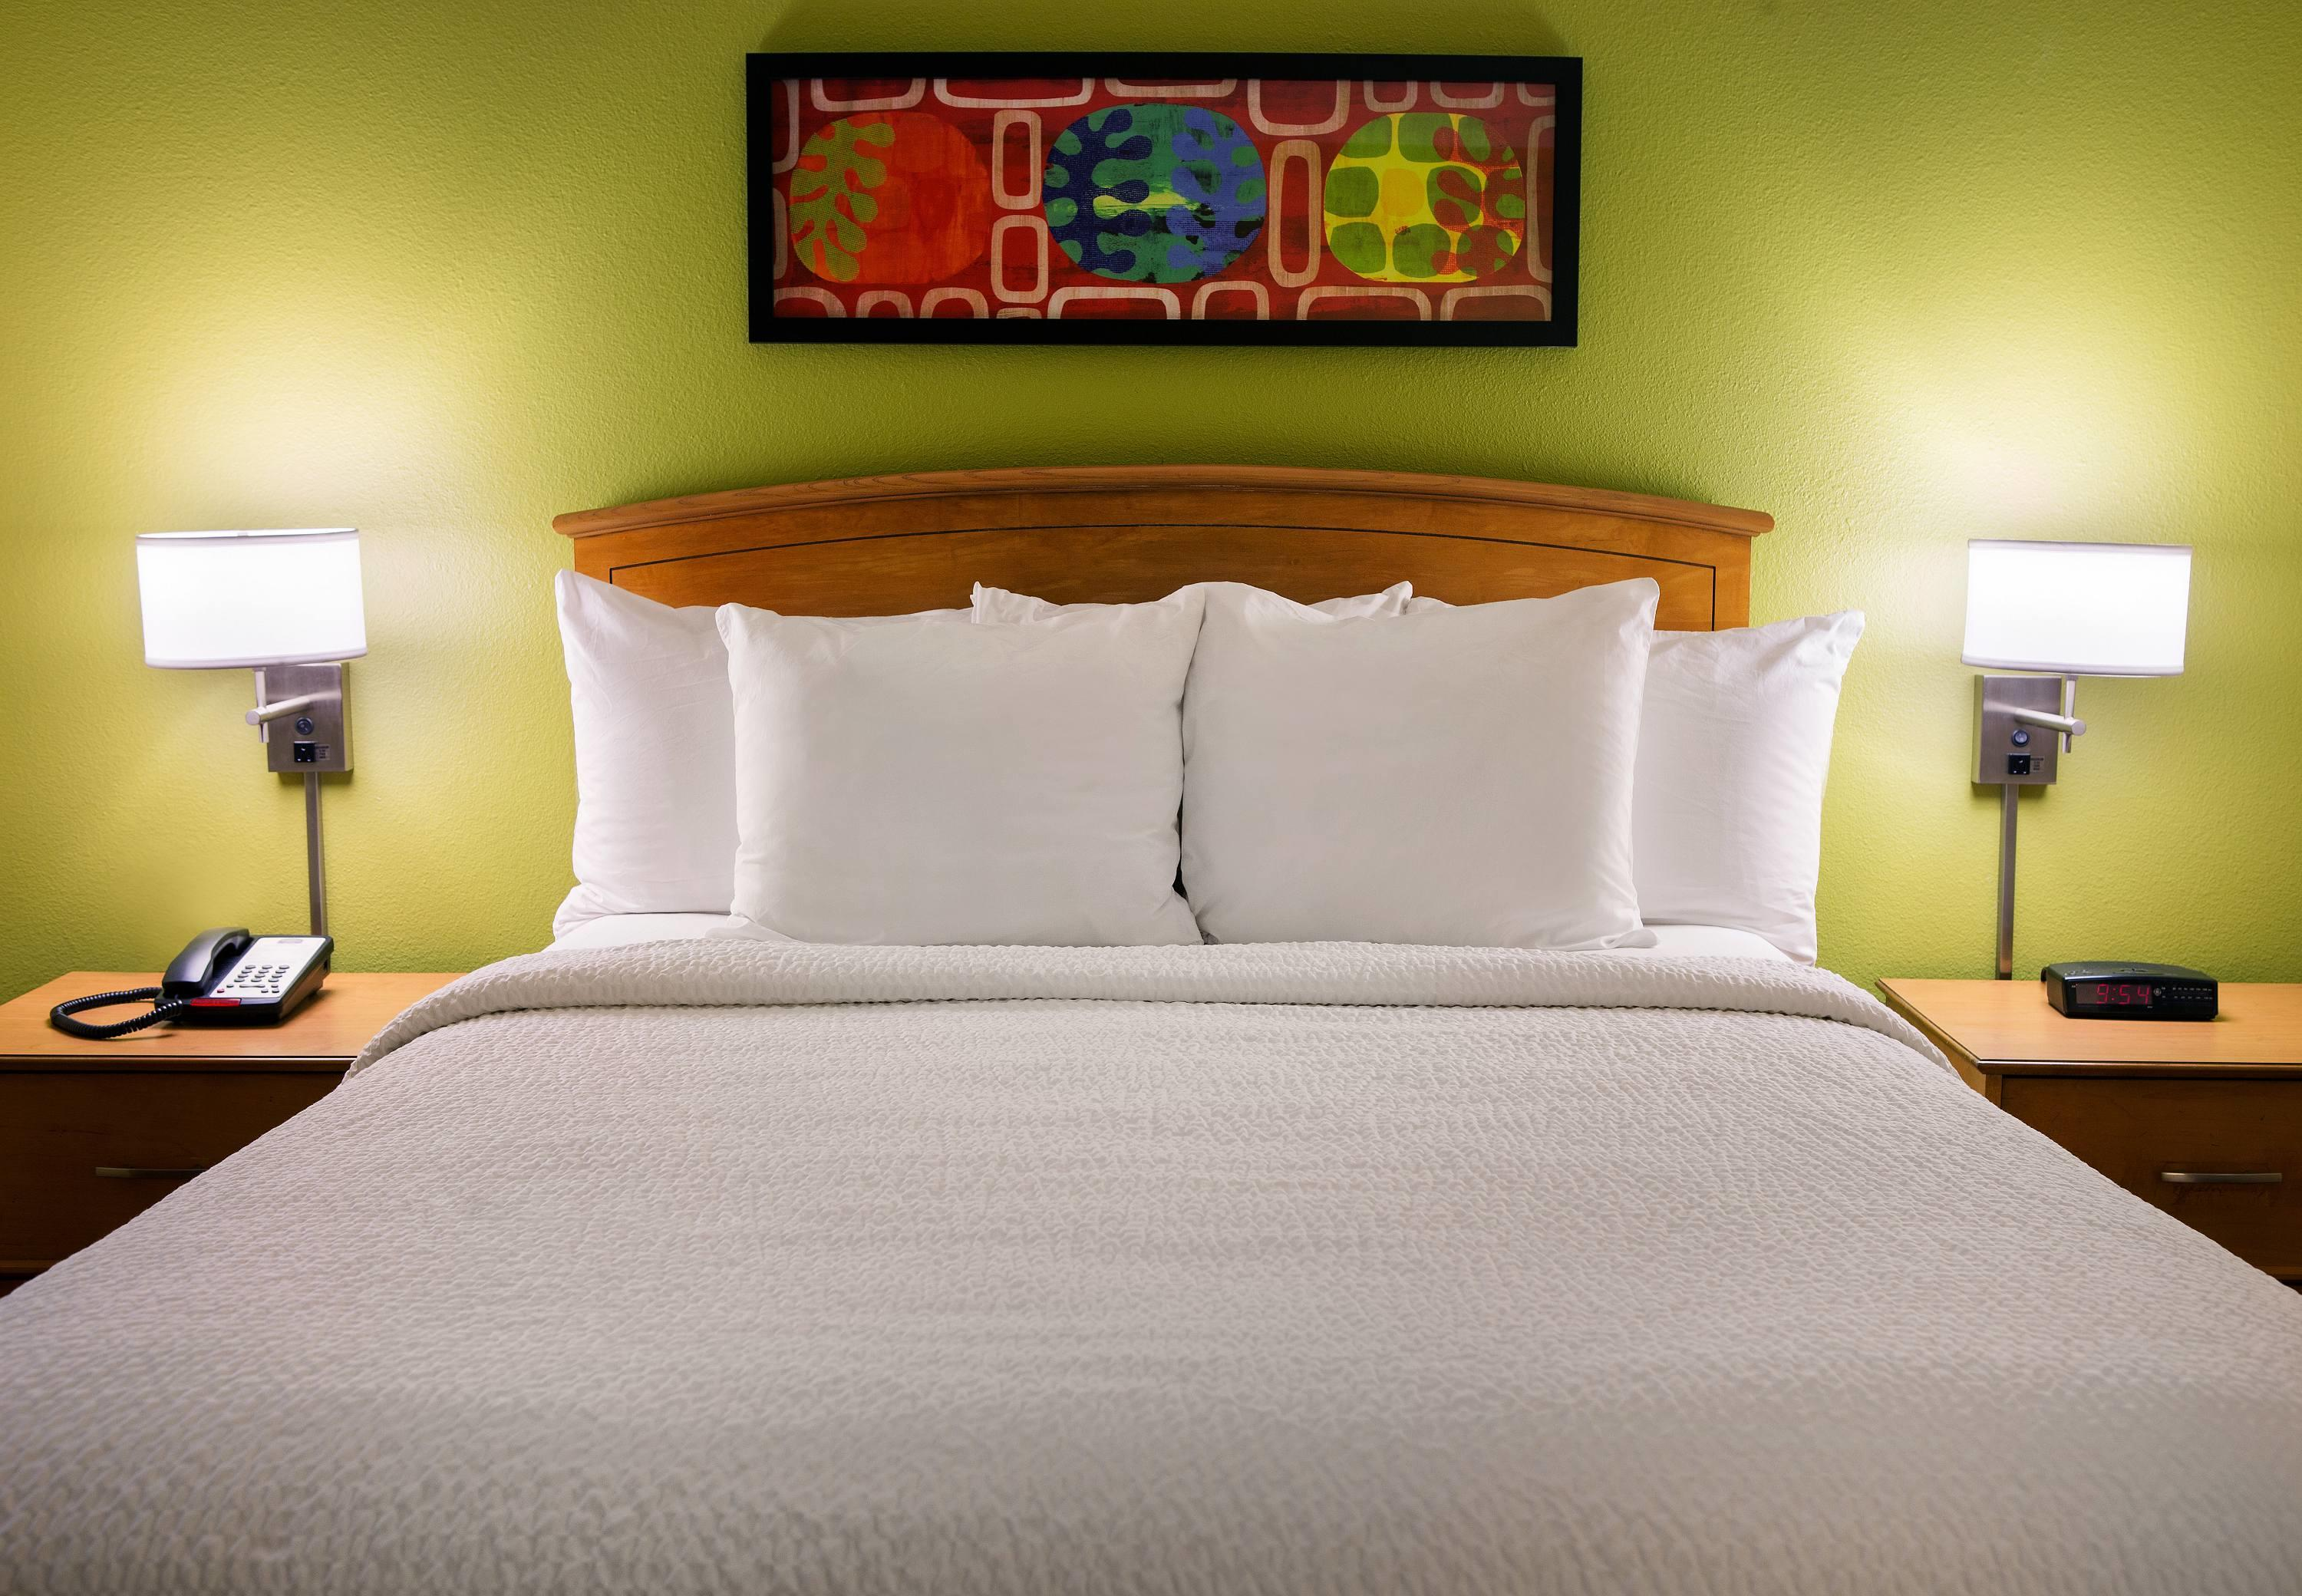 TownePlace Suites by Marriott Scottsdale image 2